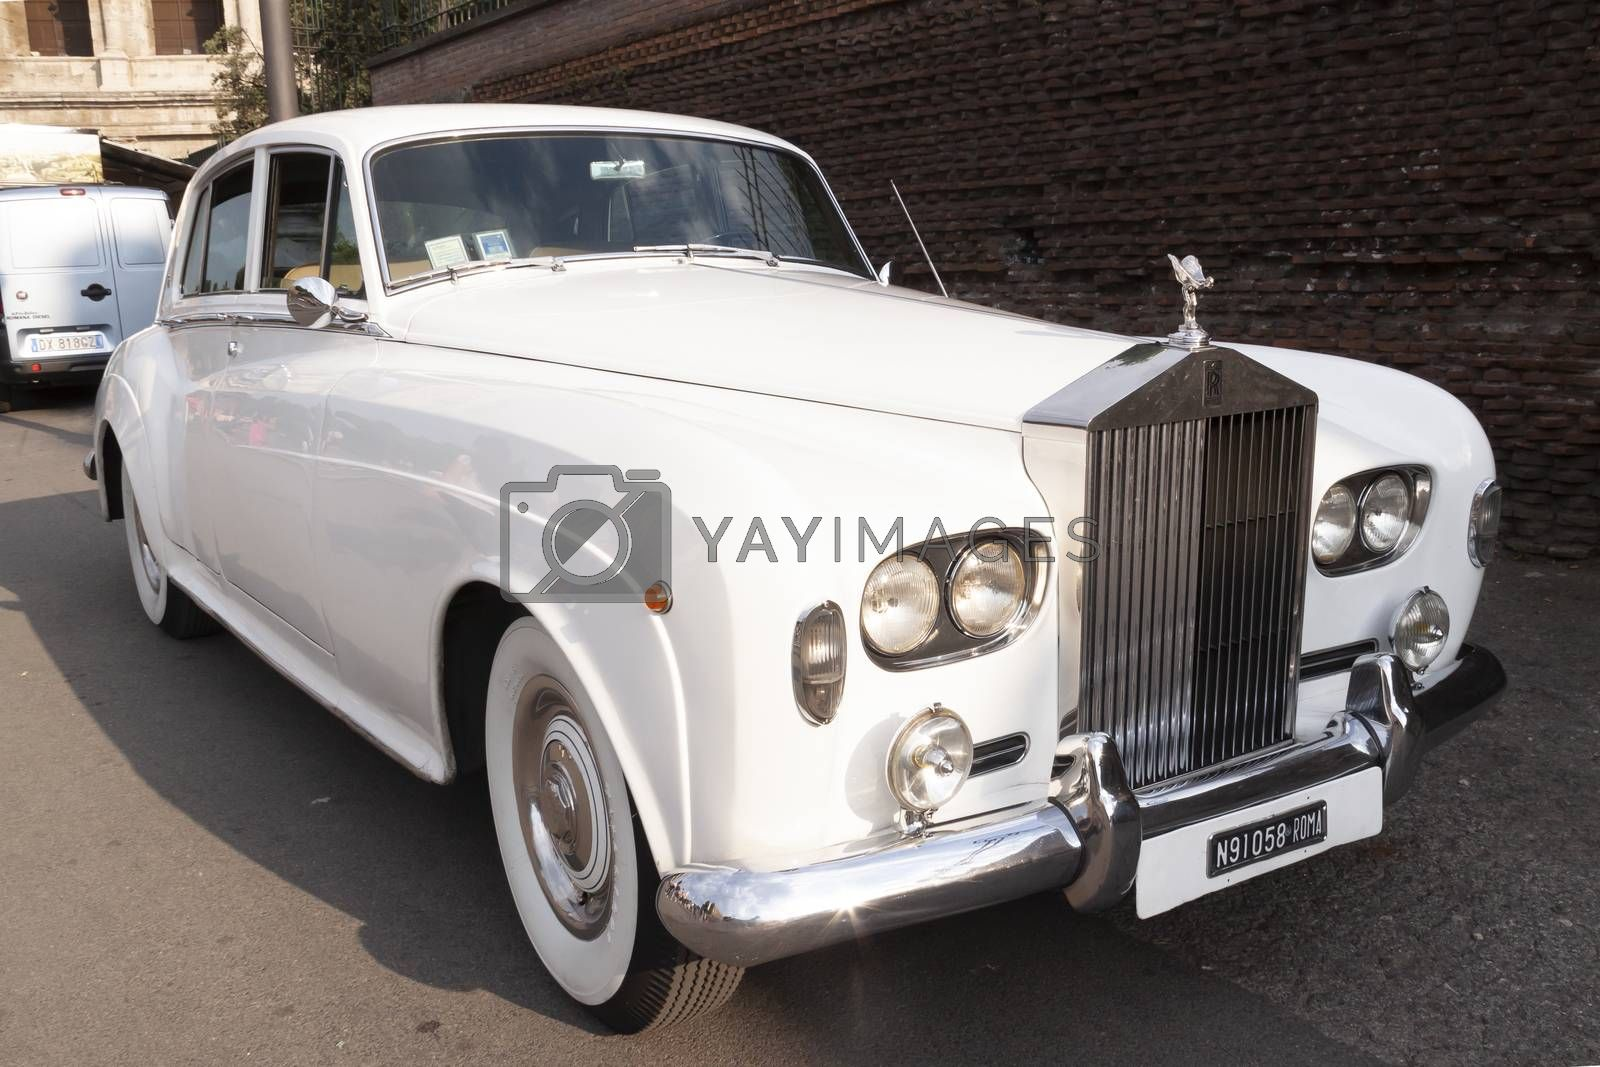 Rome, Italy - June 27, 2010: A luxurious white Rolls-Royce from the 70s, parked on a street in Rome.